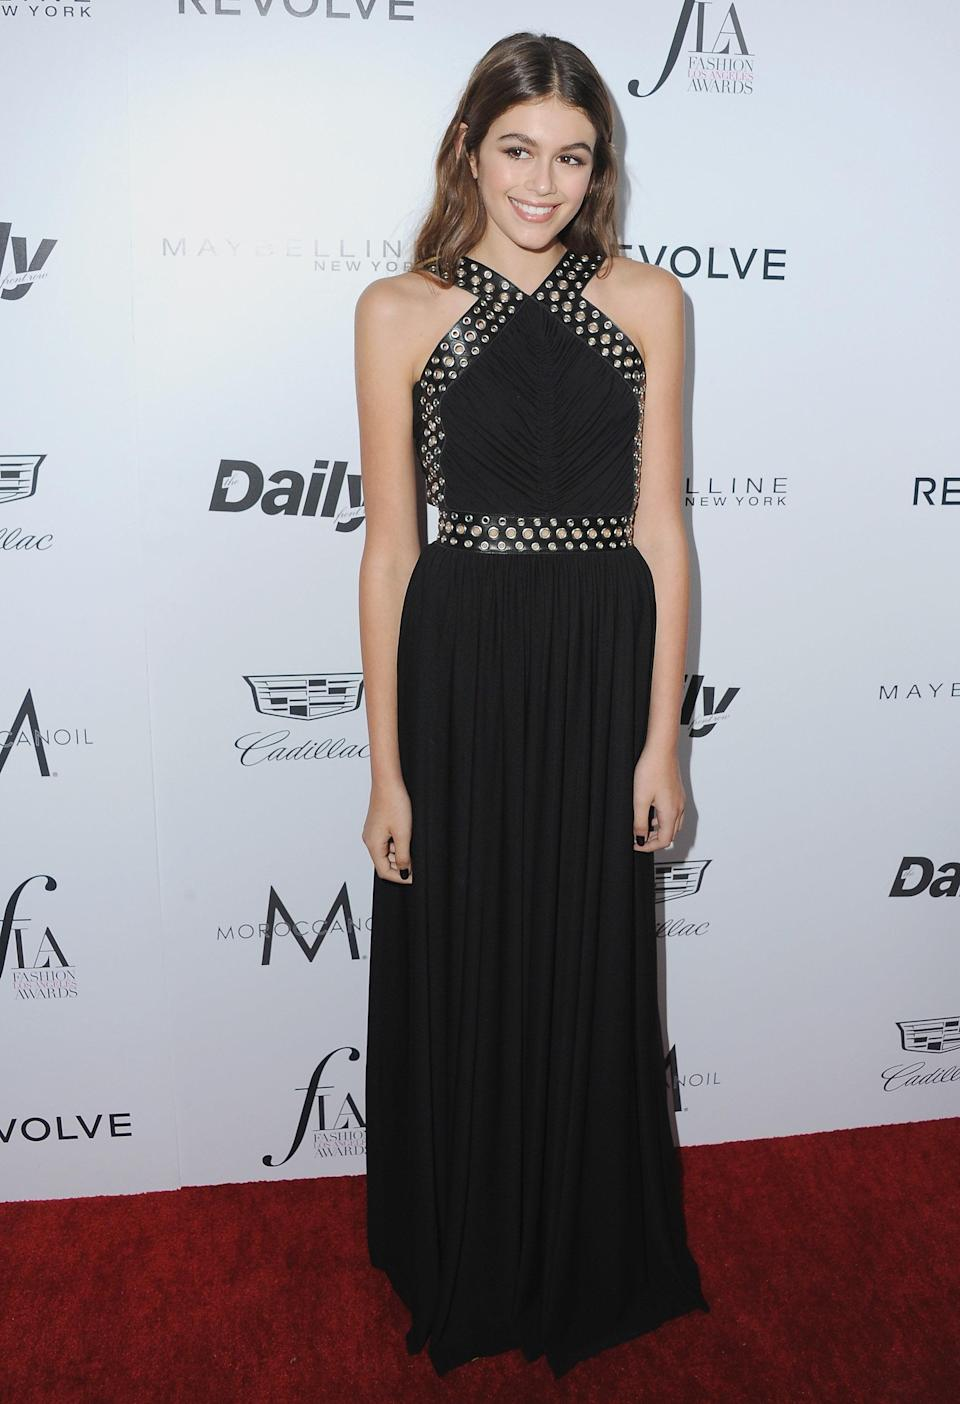 A not-so-typical black is one of Kaia's red-carpet staples. For The Daily Front Row Fashion Los Angeles Awards, she wore a long black gown accented with leather and grommets.